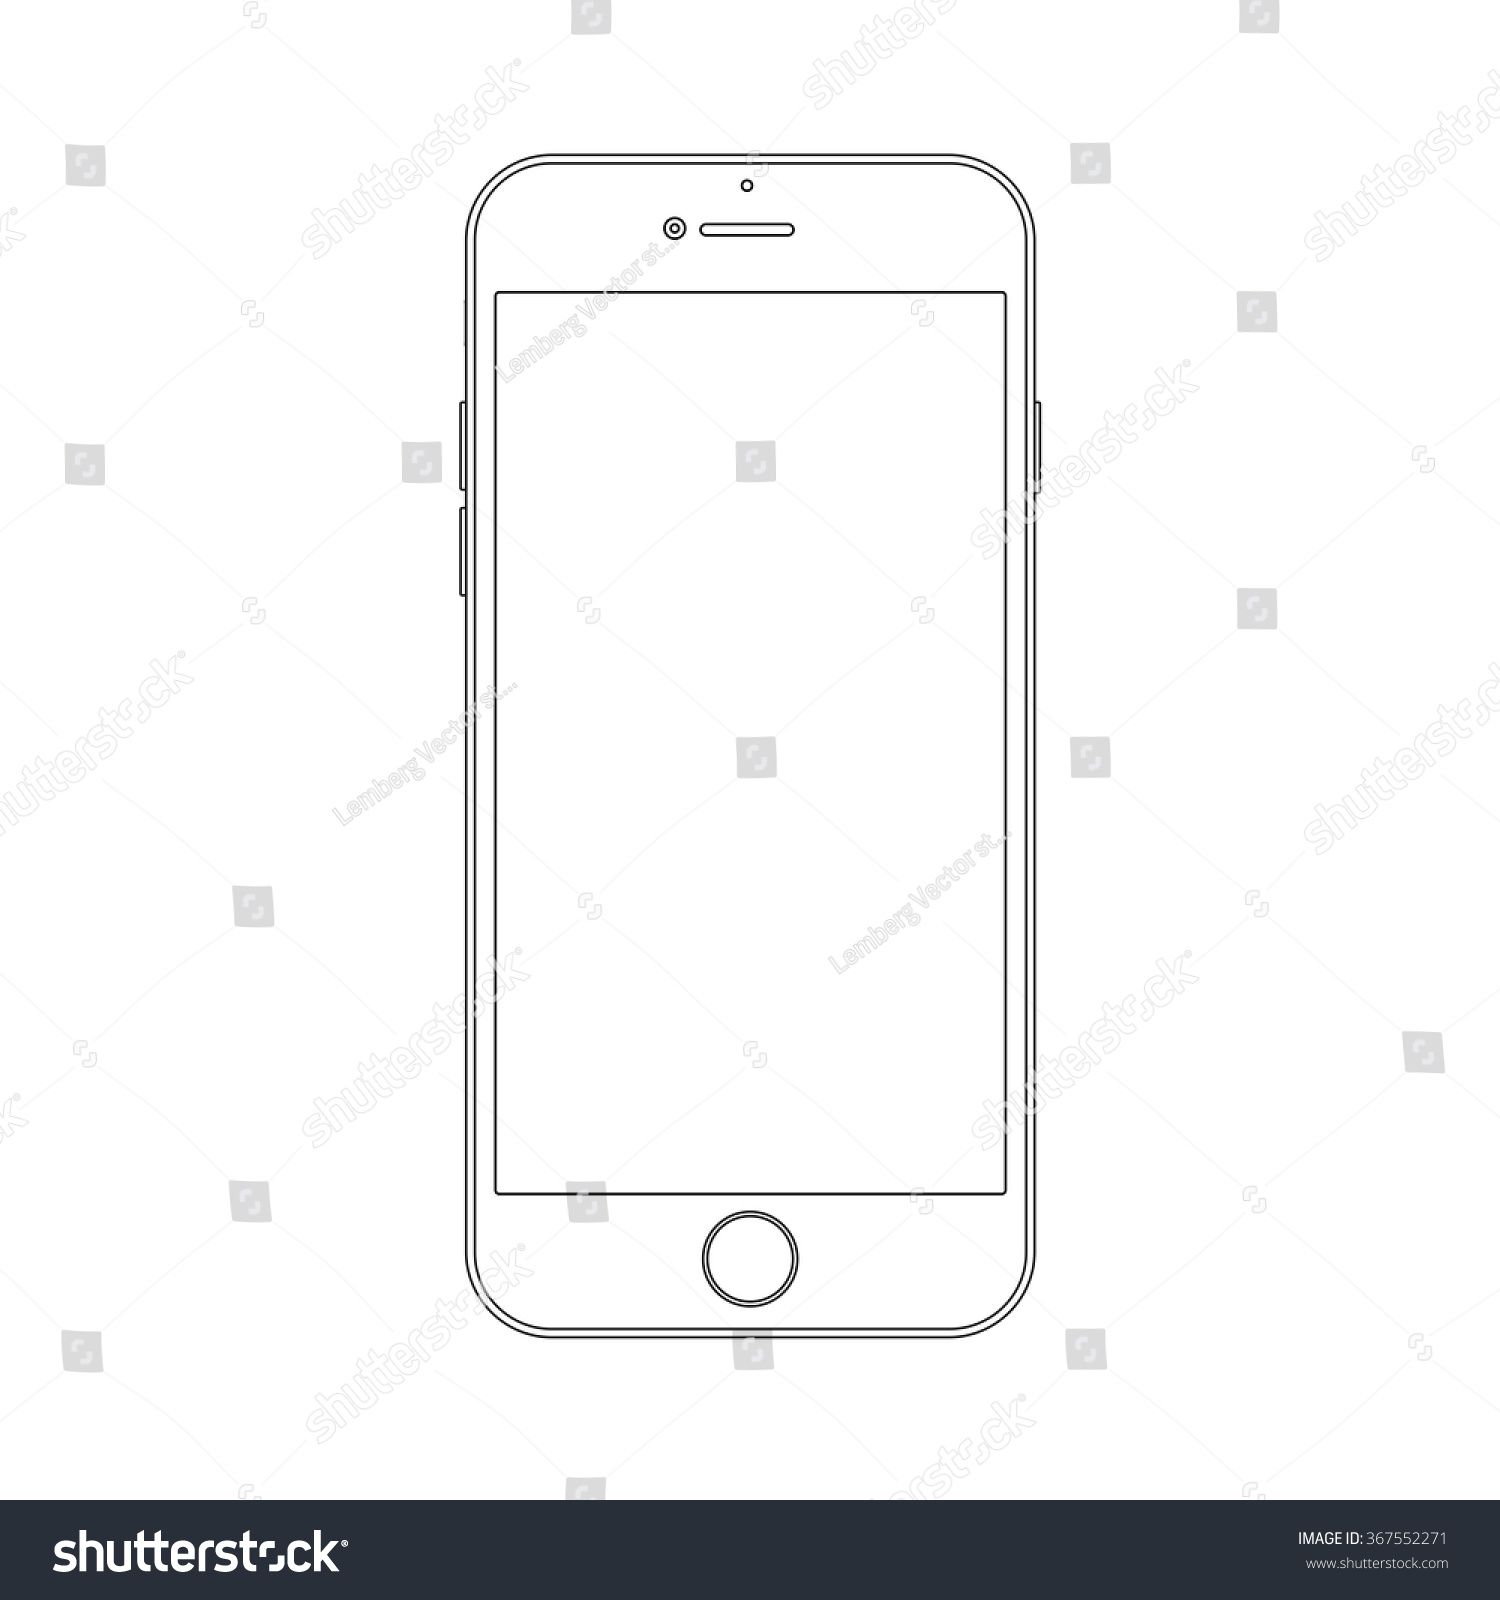 Outline Drawing Smartphone Similar To Iphone. Elegant Thin Line Style ...